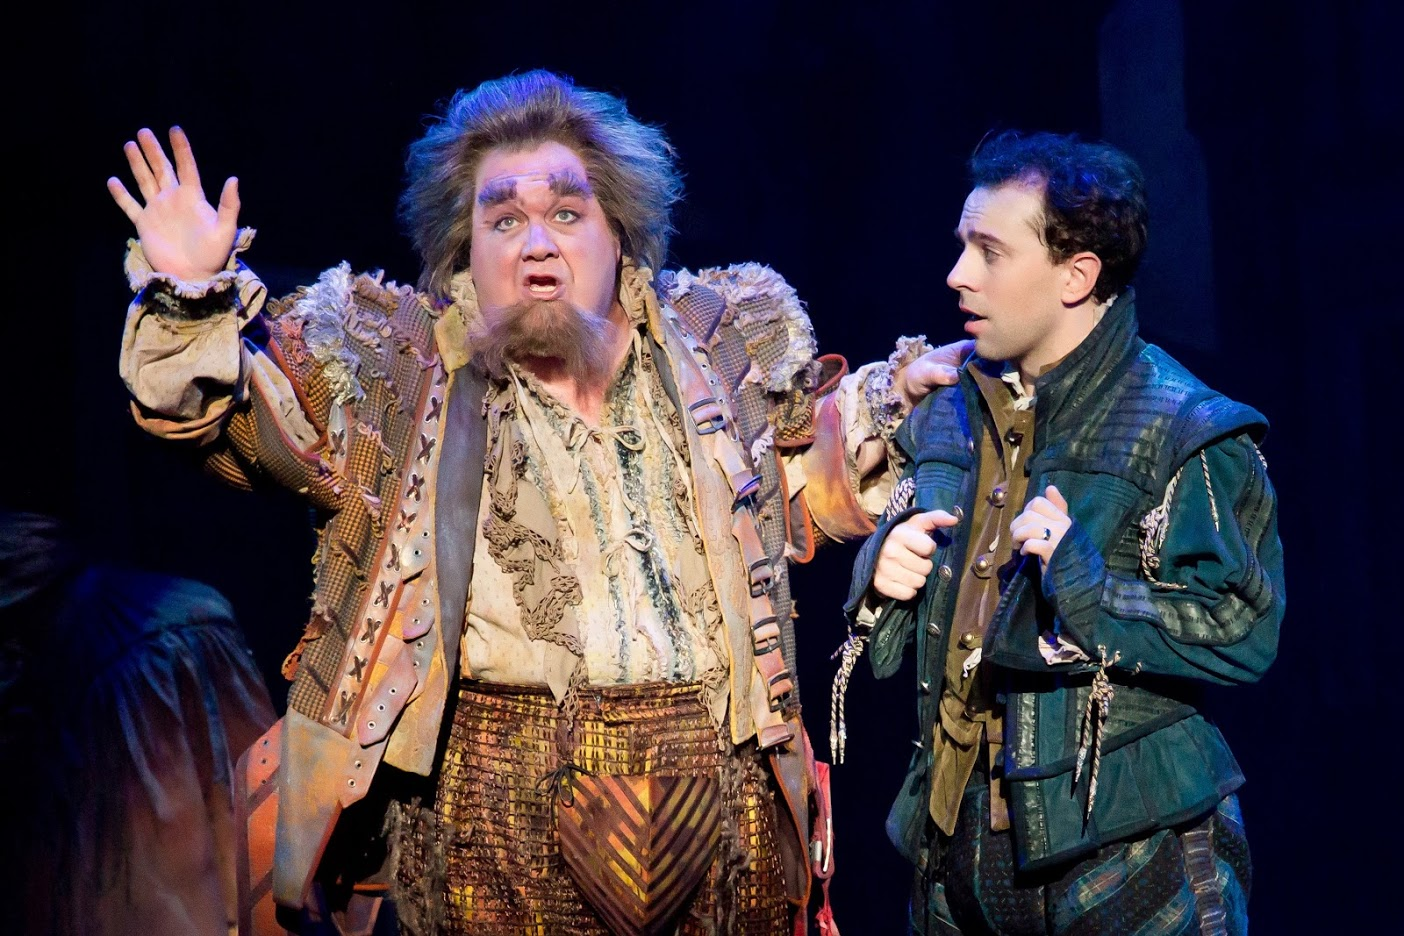 BWW Review: SOMETHING ROTTEN is a must see musical farce at Playhouse Square/Connor Palace